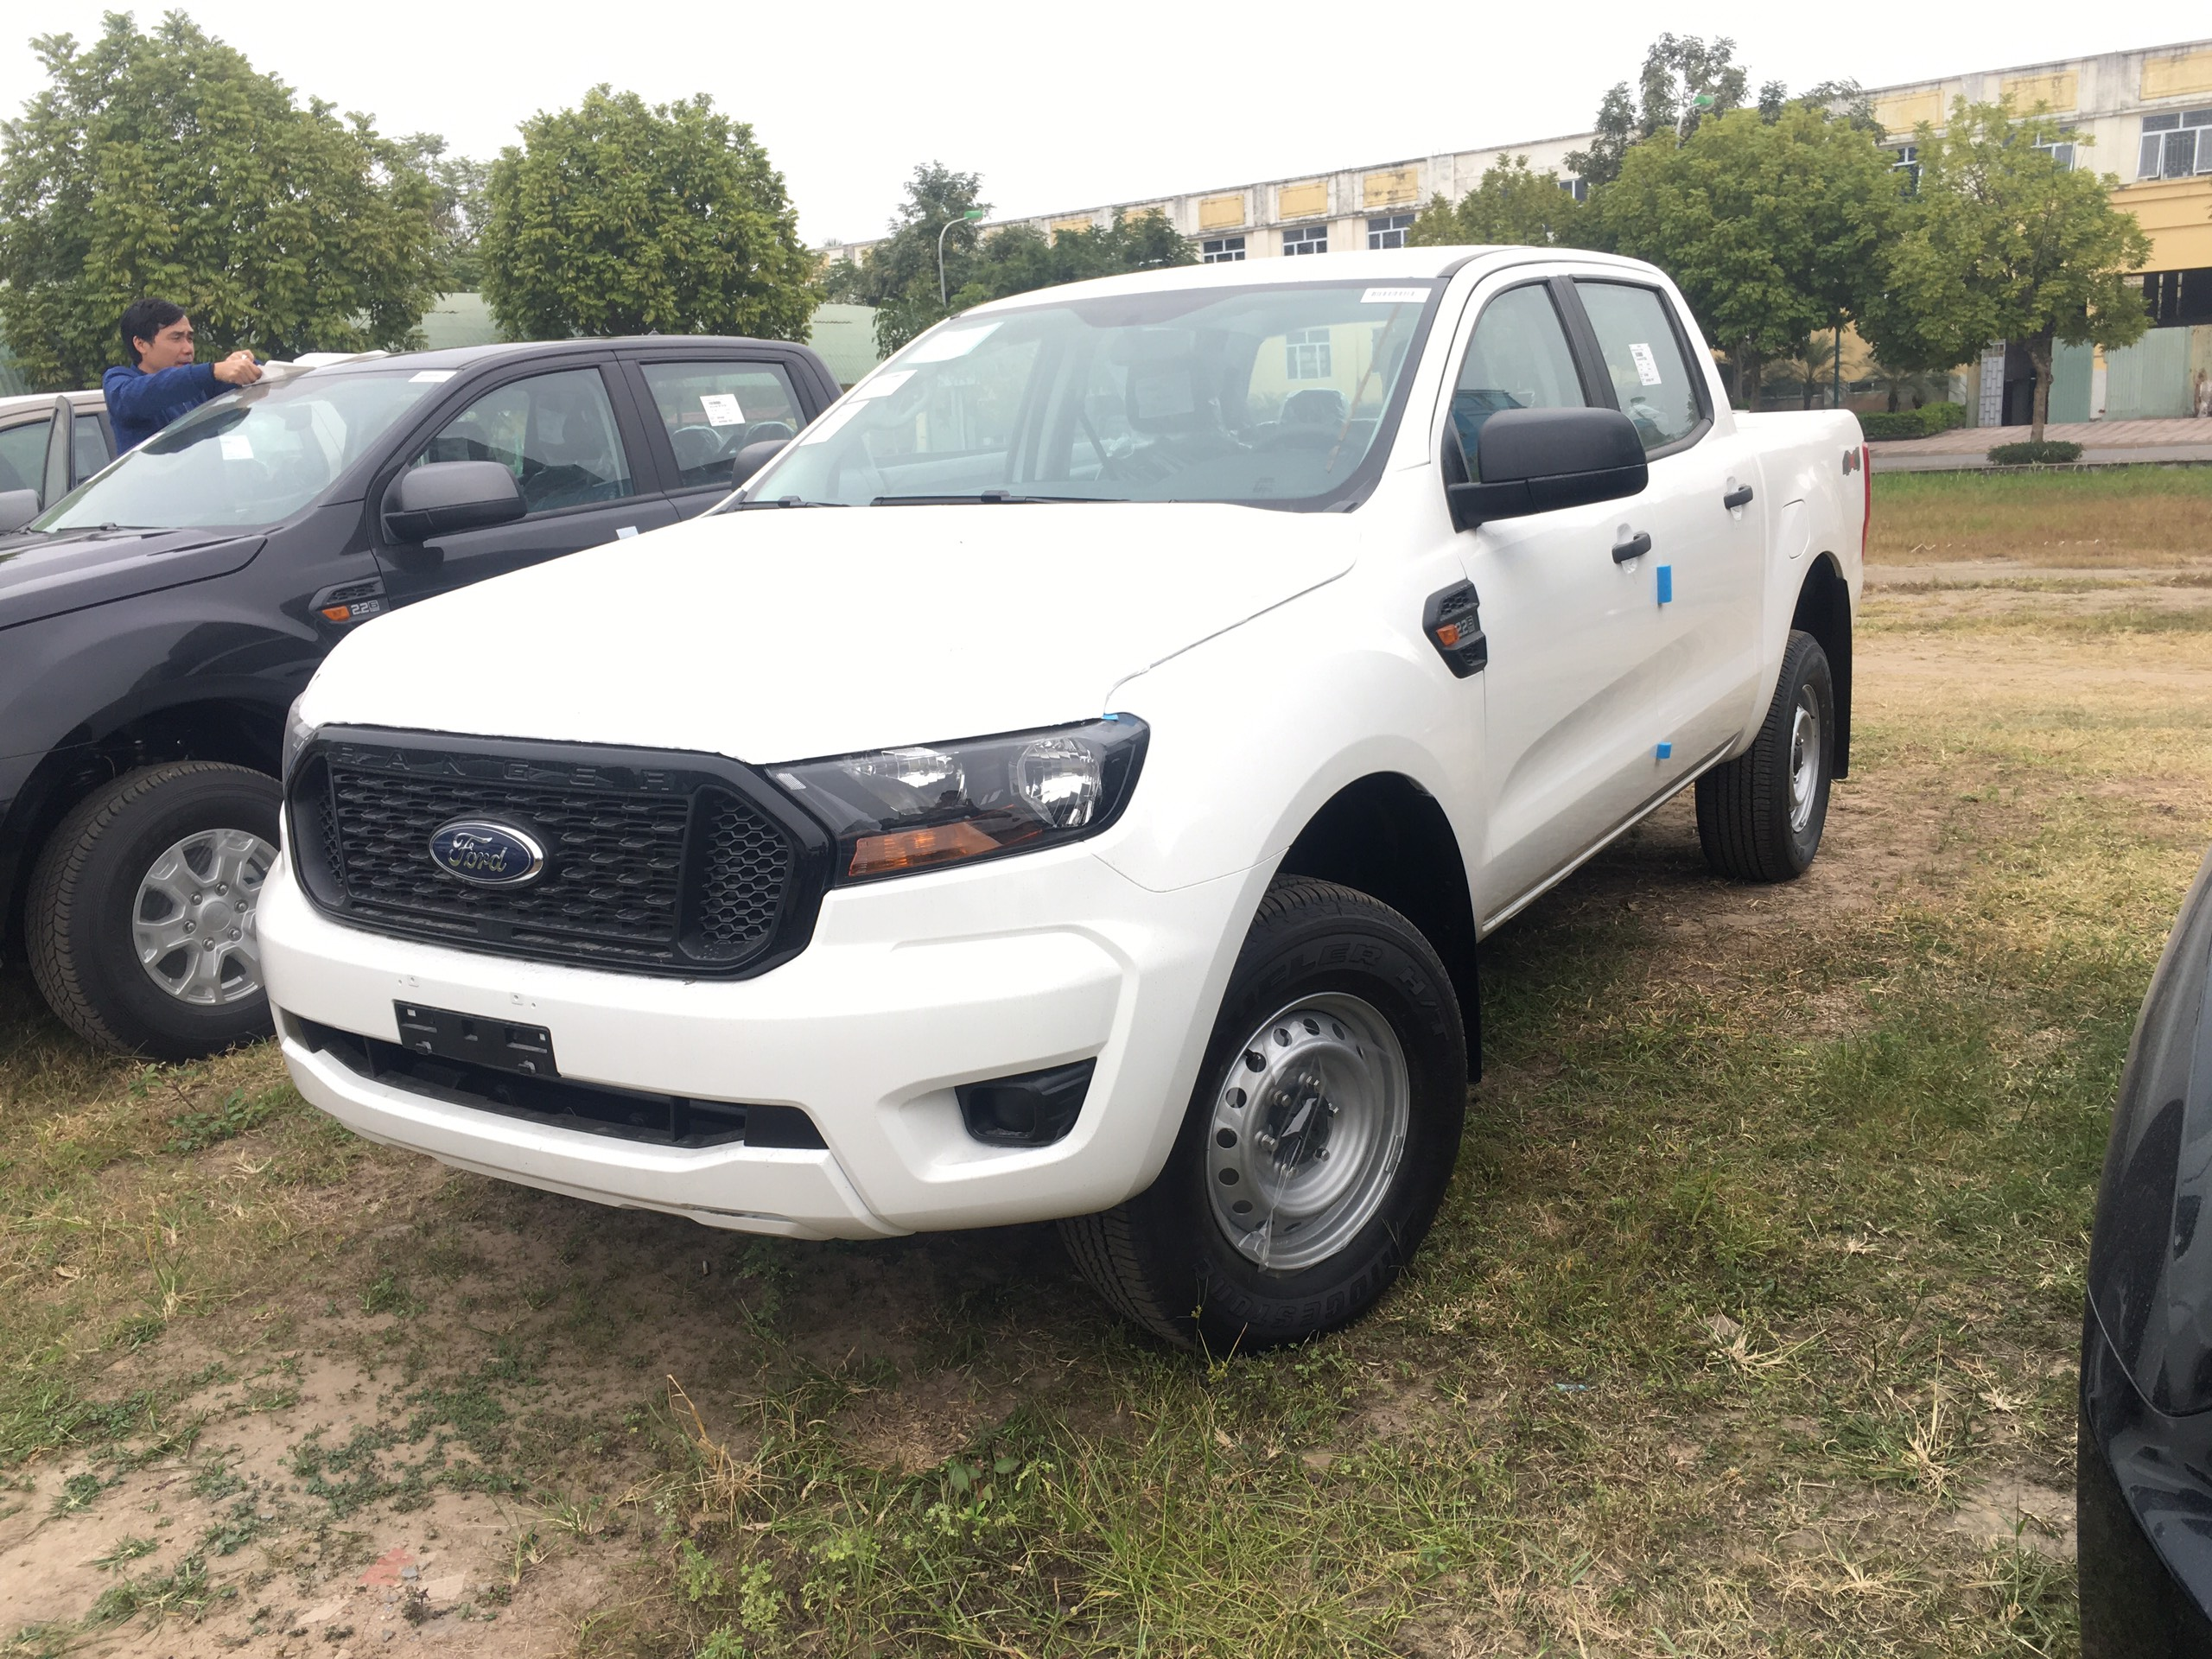 Ford Ranger XL 2.2L 4×4 MT6